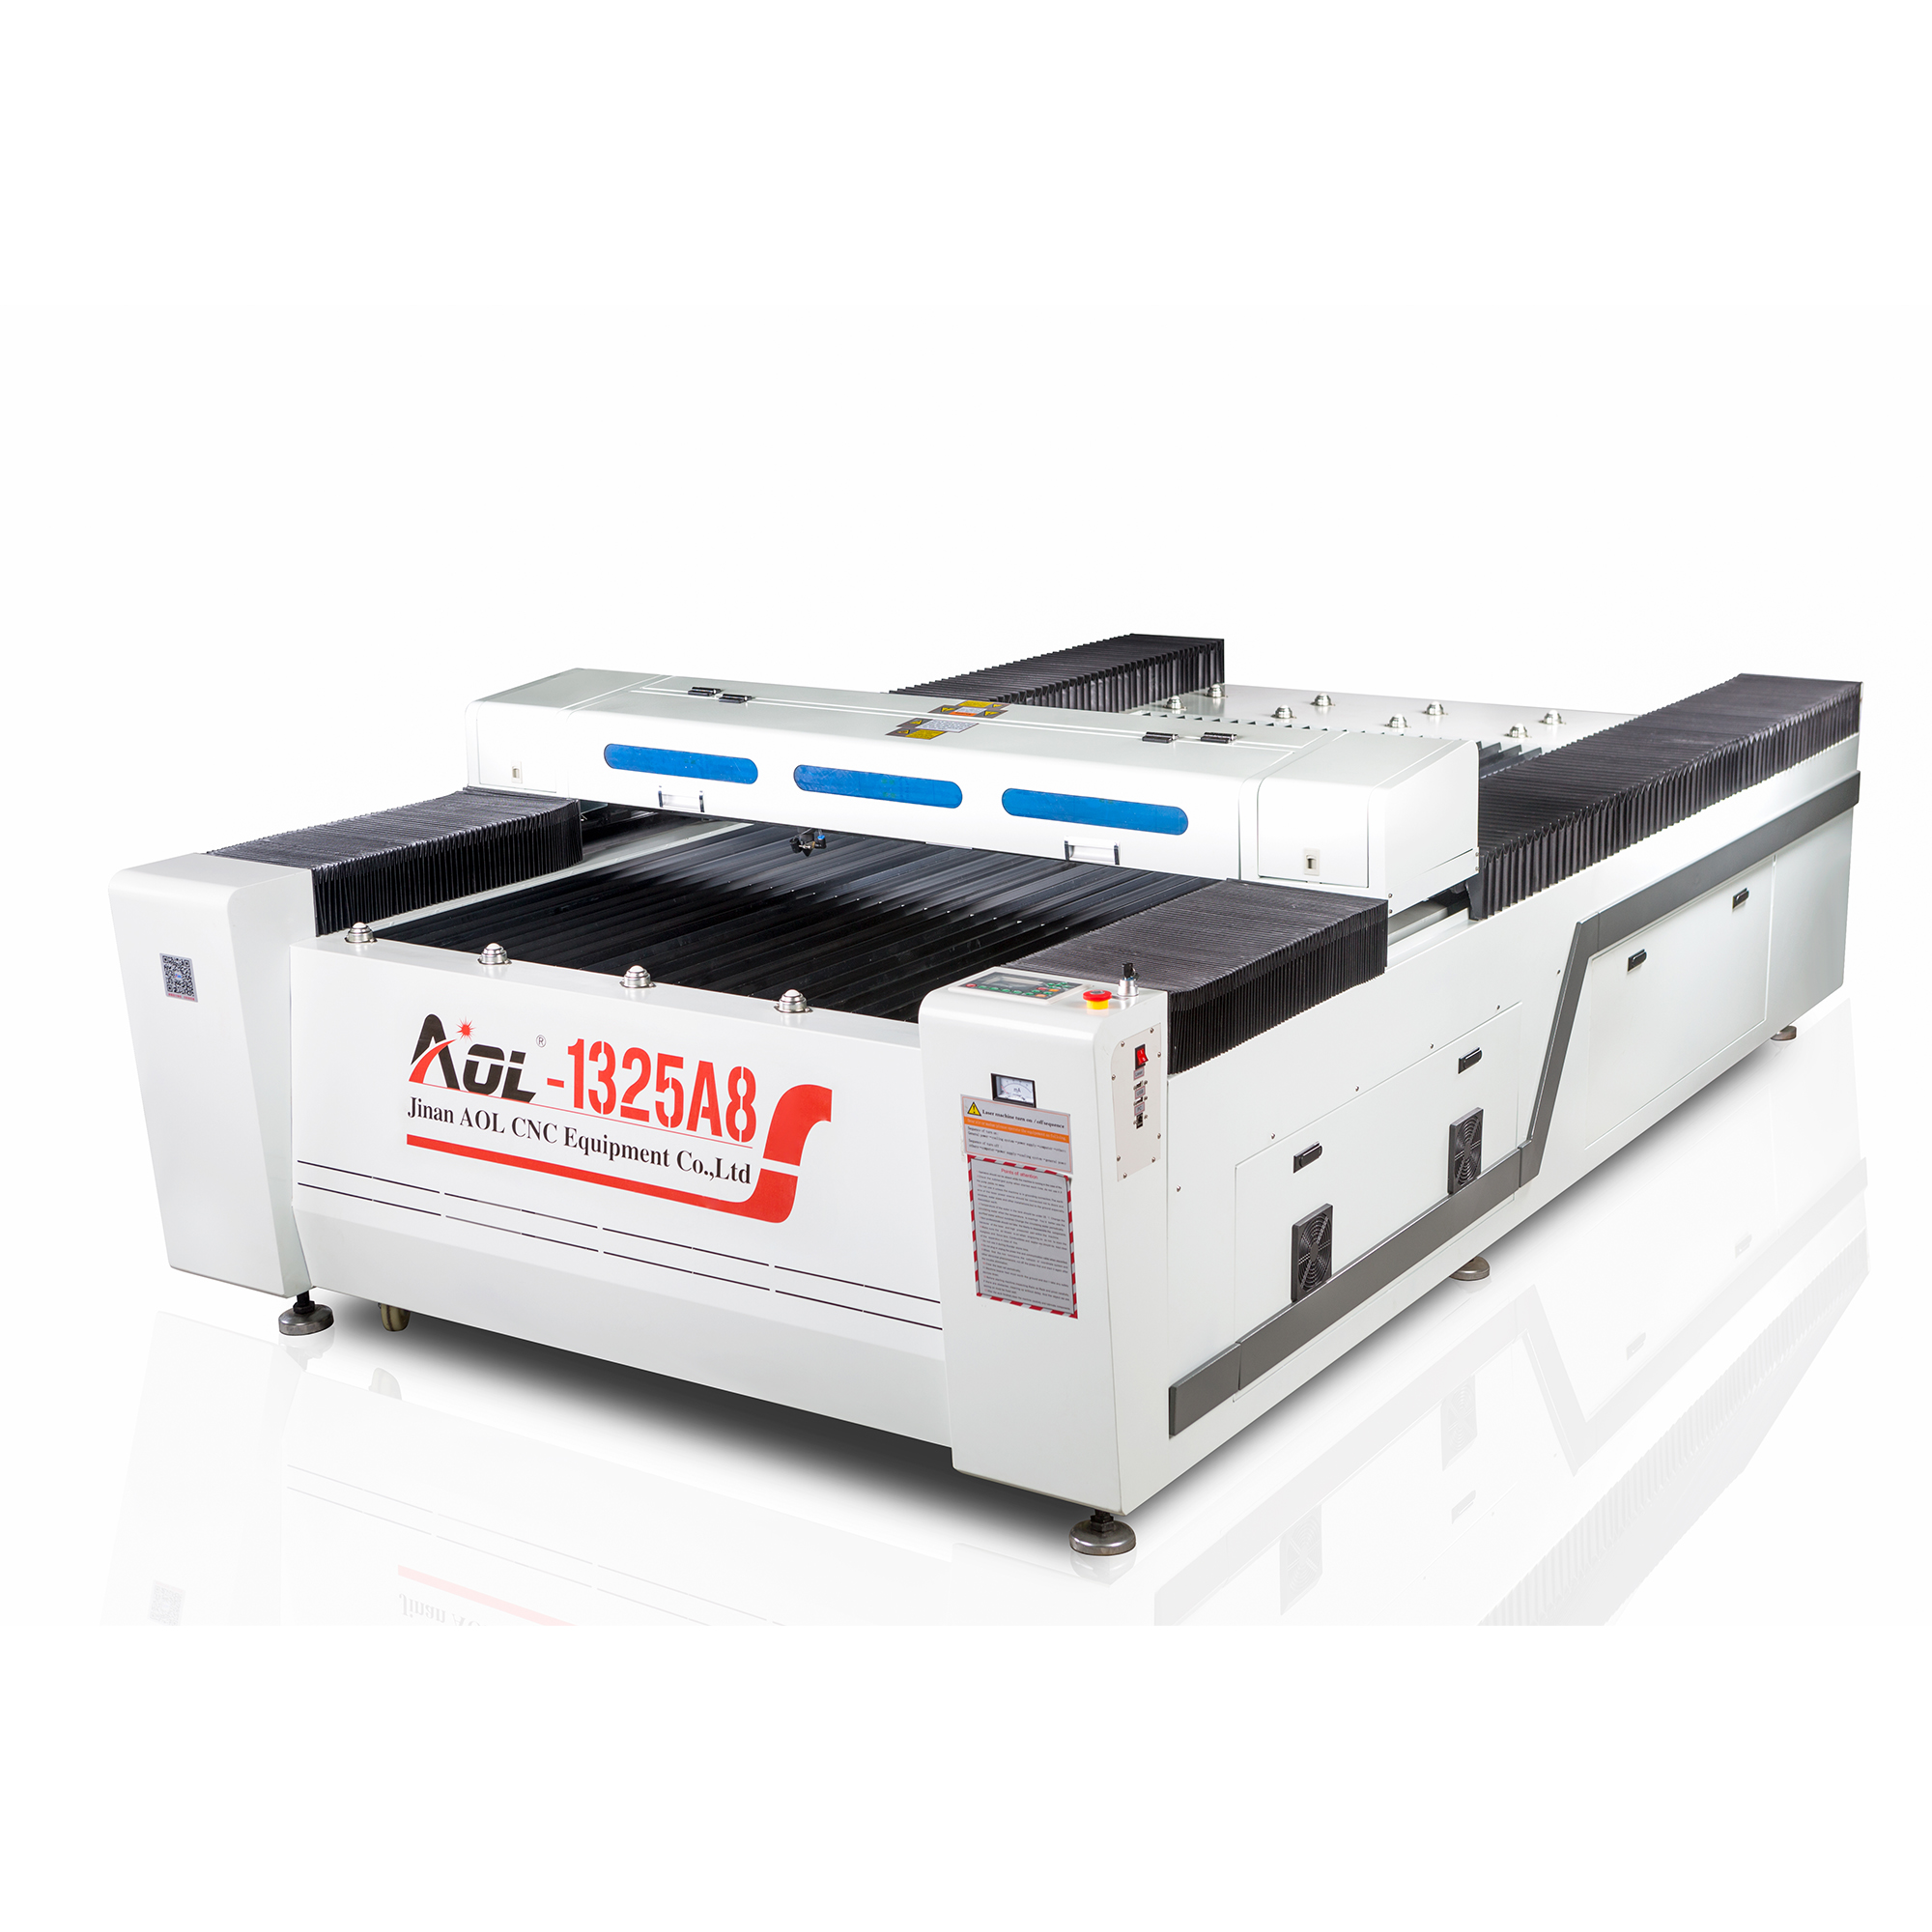 aol metal and non-metal 1325 <strong>laser</strong> cutting machine cutting 3mm steel for sale